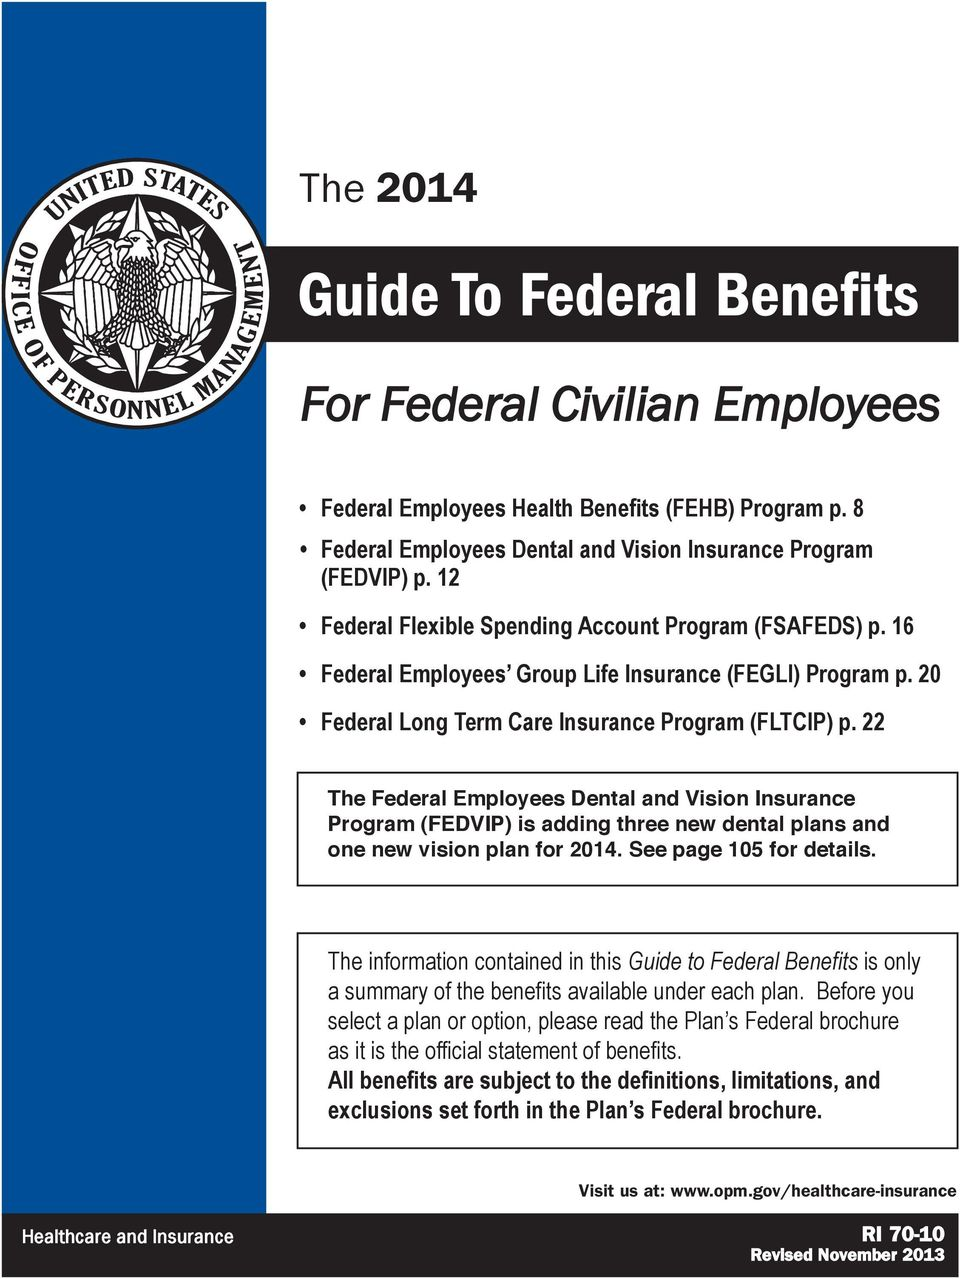 22 The Federal Employees Dental and Vision Insurance Program (FEDVIP) is adding three new dental plans and one new vision plan for 2014. See page 105 for details.